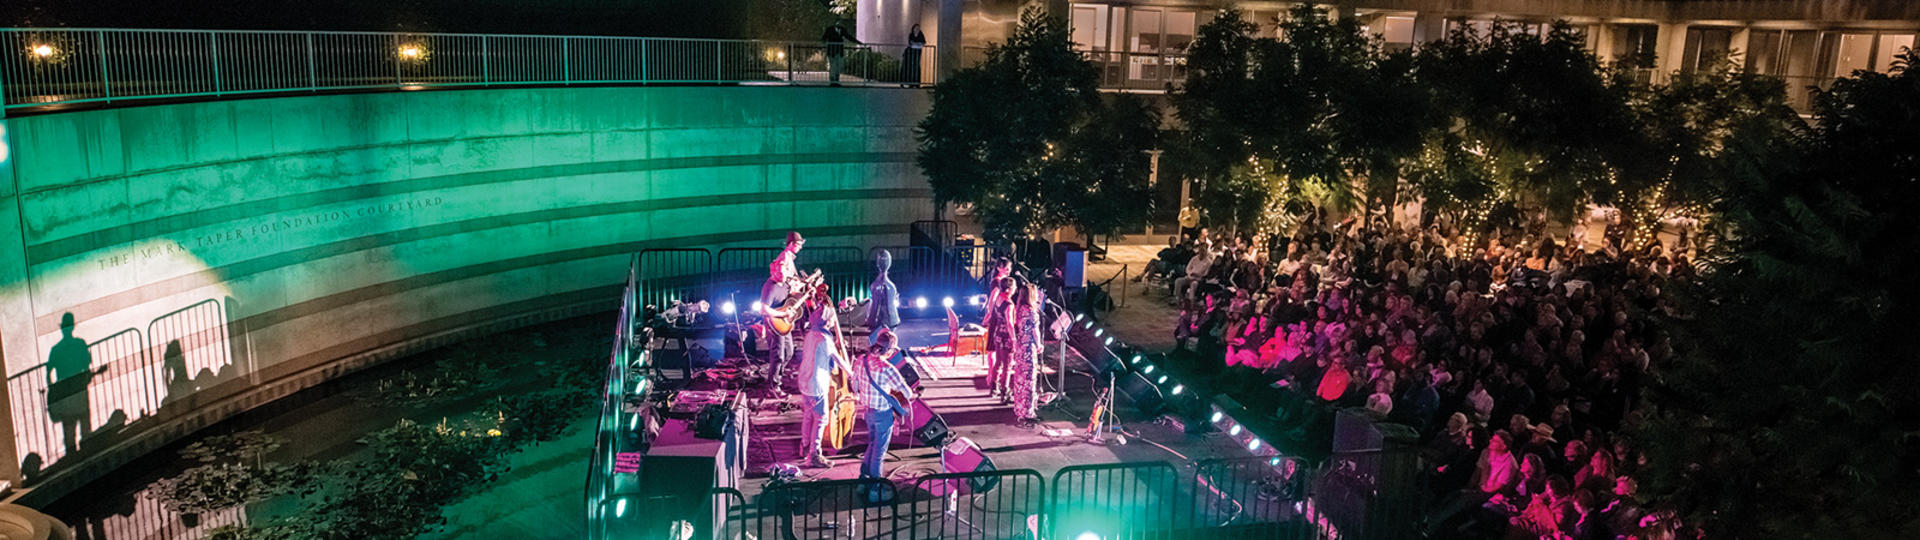 Skirball Cultrual Center Sunset Concerts